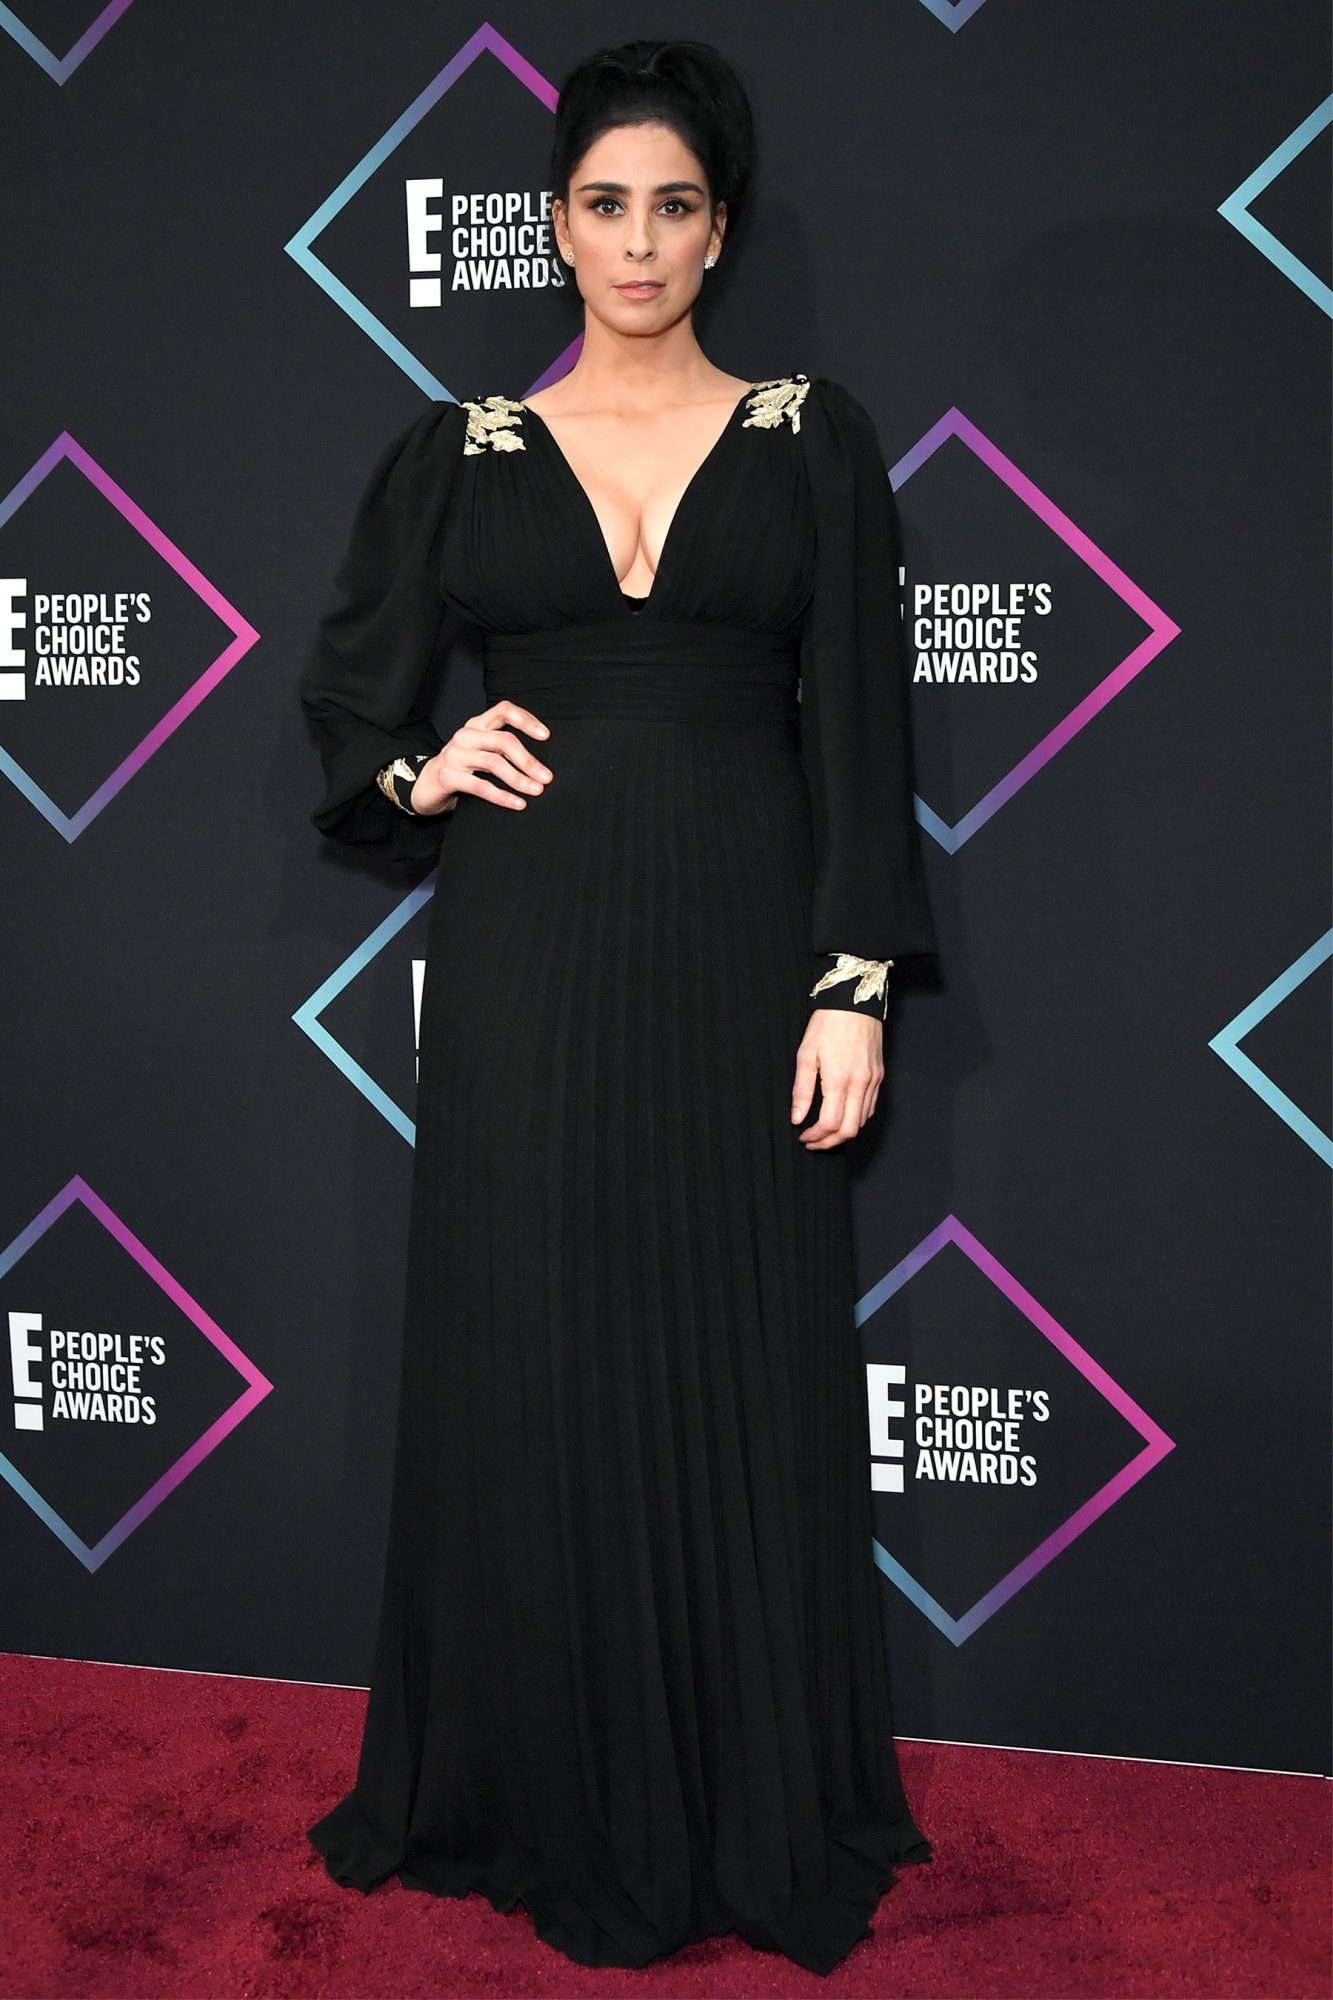 People's Choice Awards, Press Room, Los Angeles, USA - 11 Nov 2018